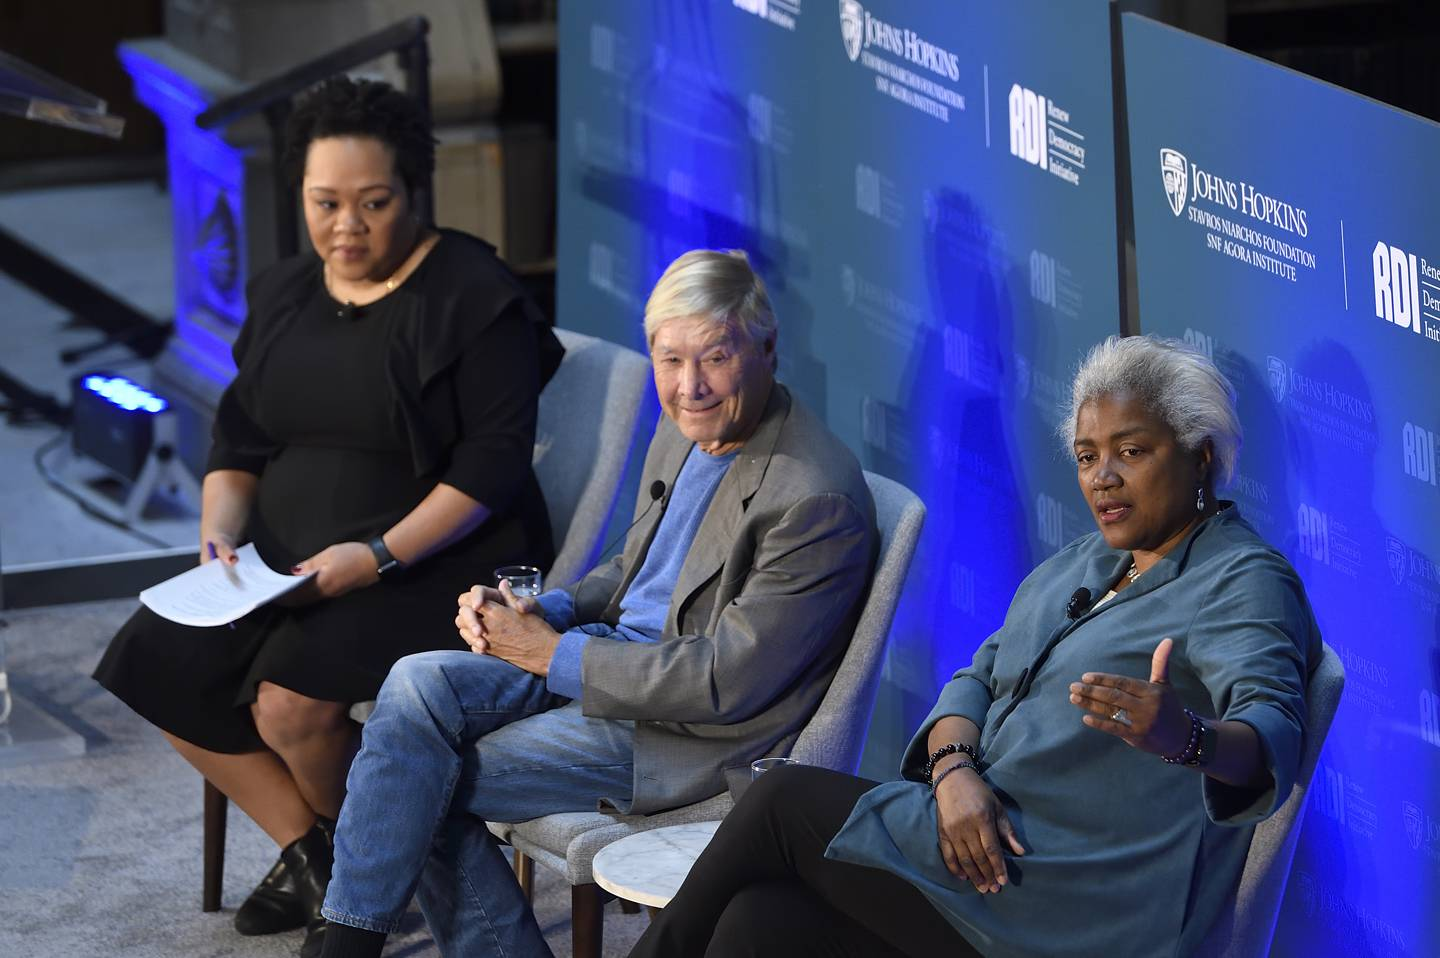 Richard North Patterson and Donna Brazile